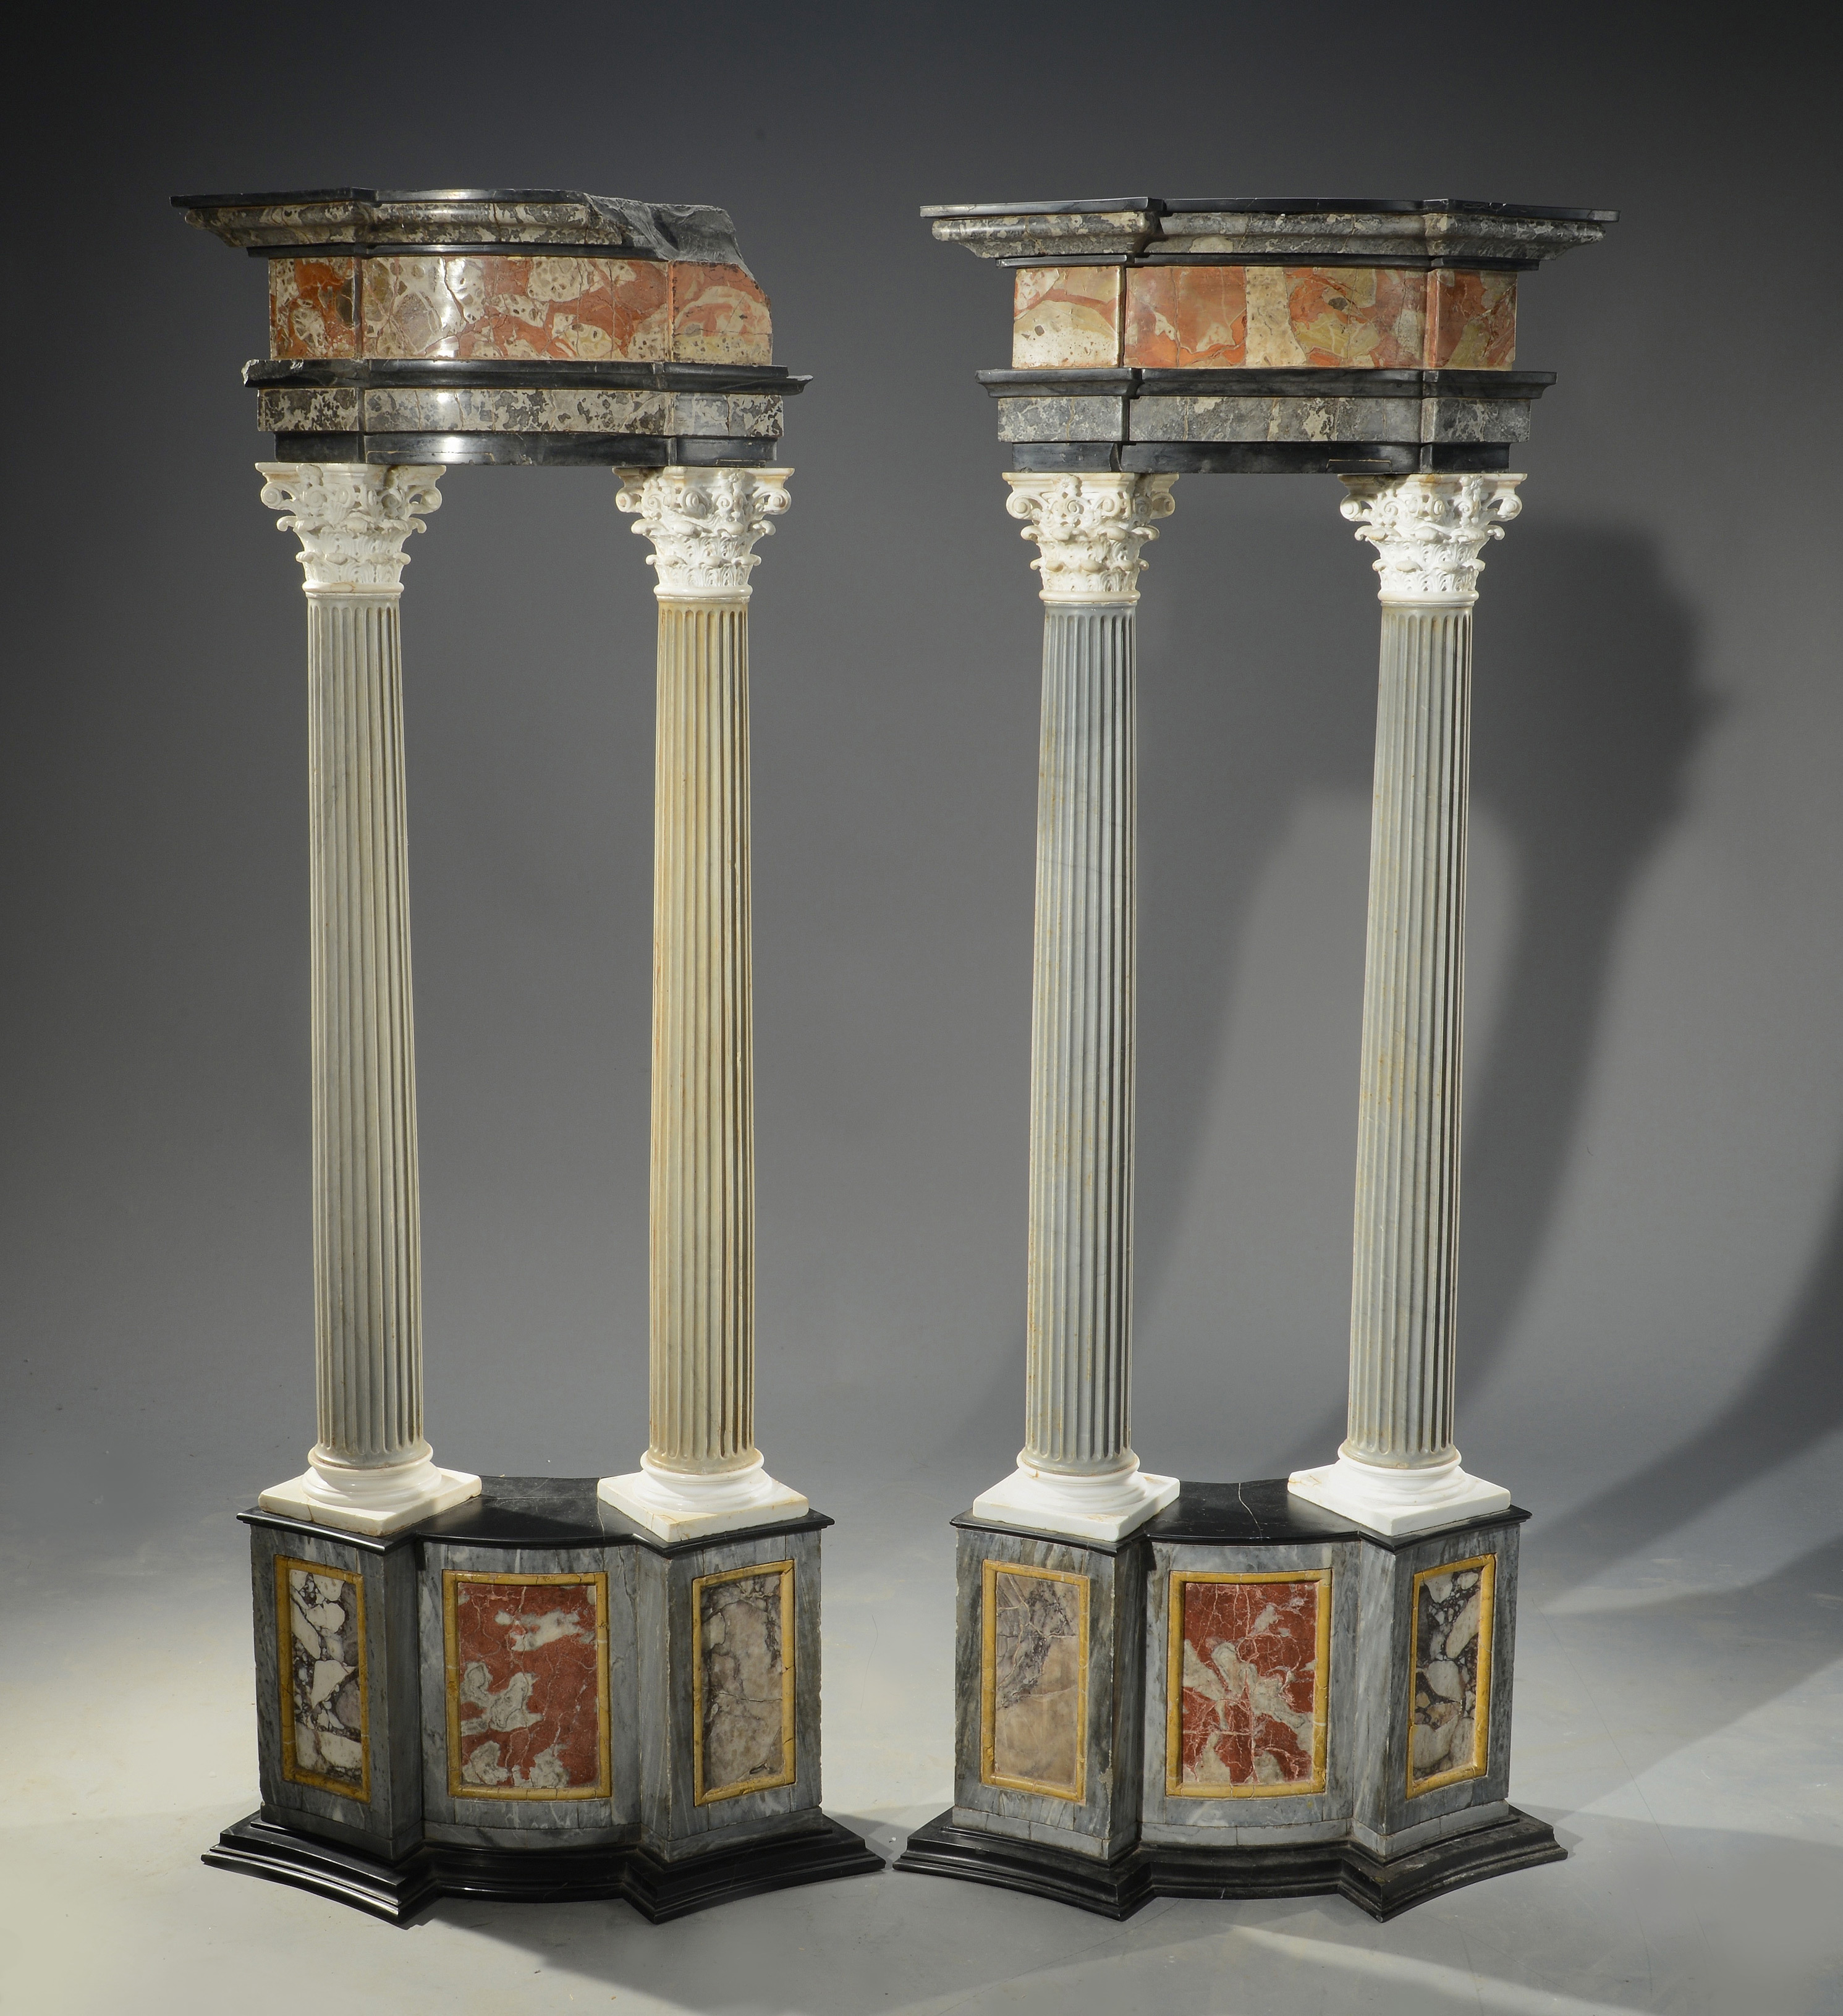 Pair of architectural columns, 19th century